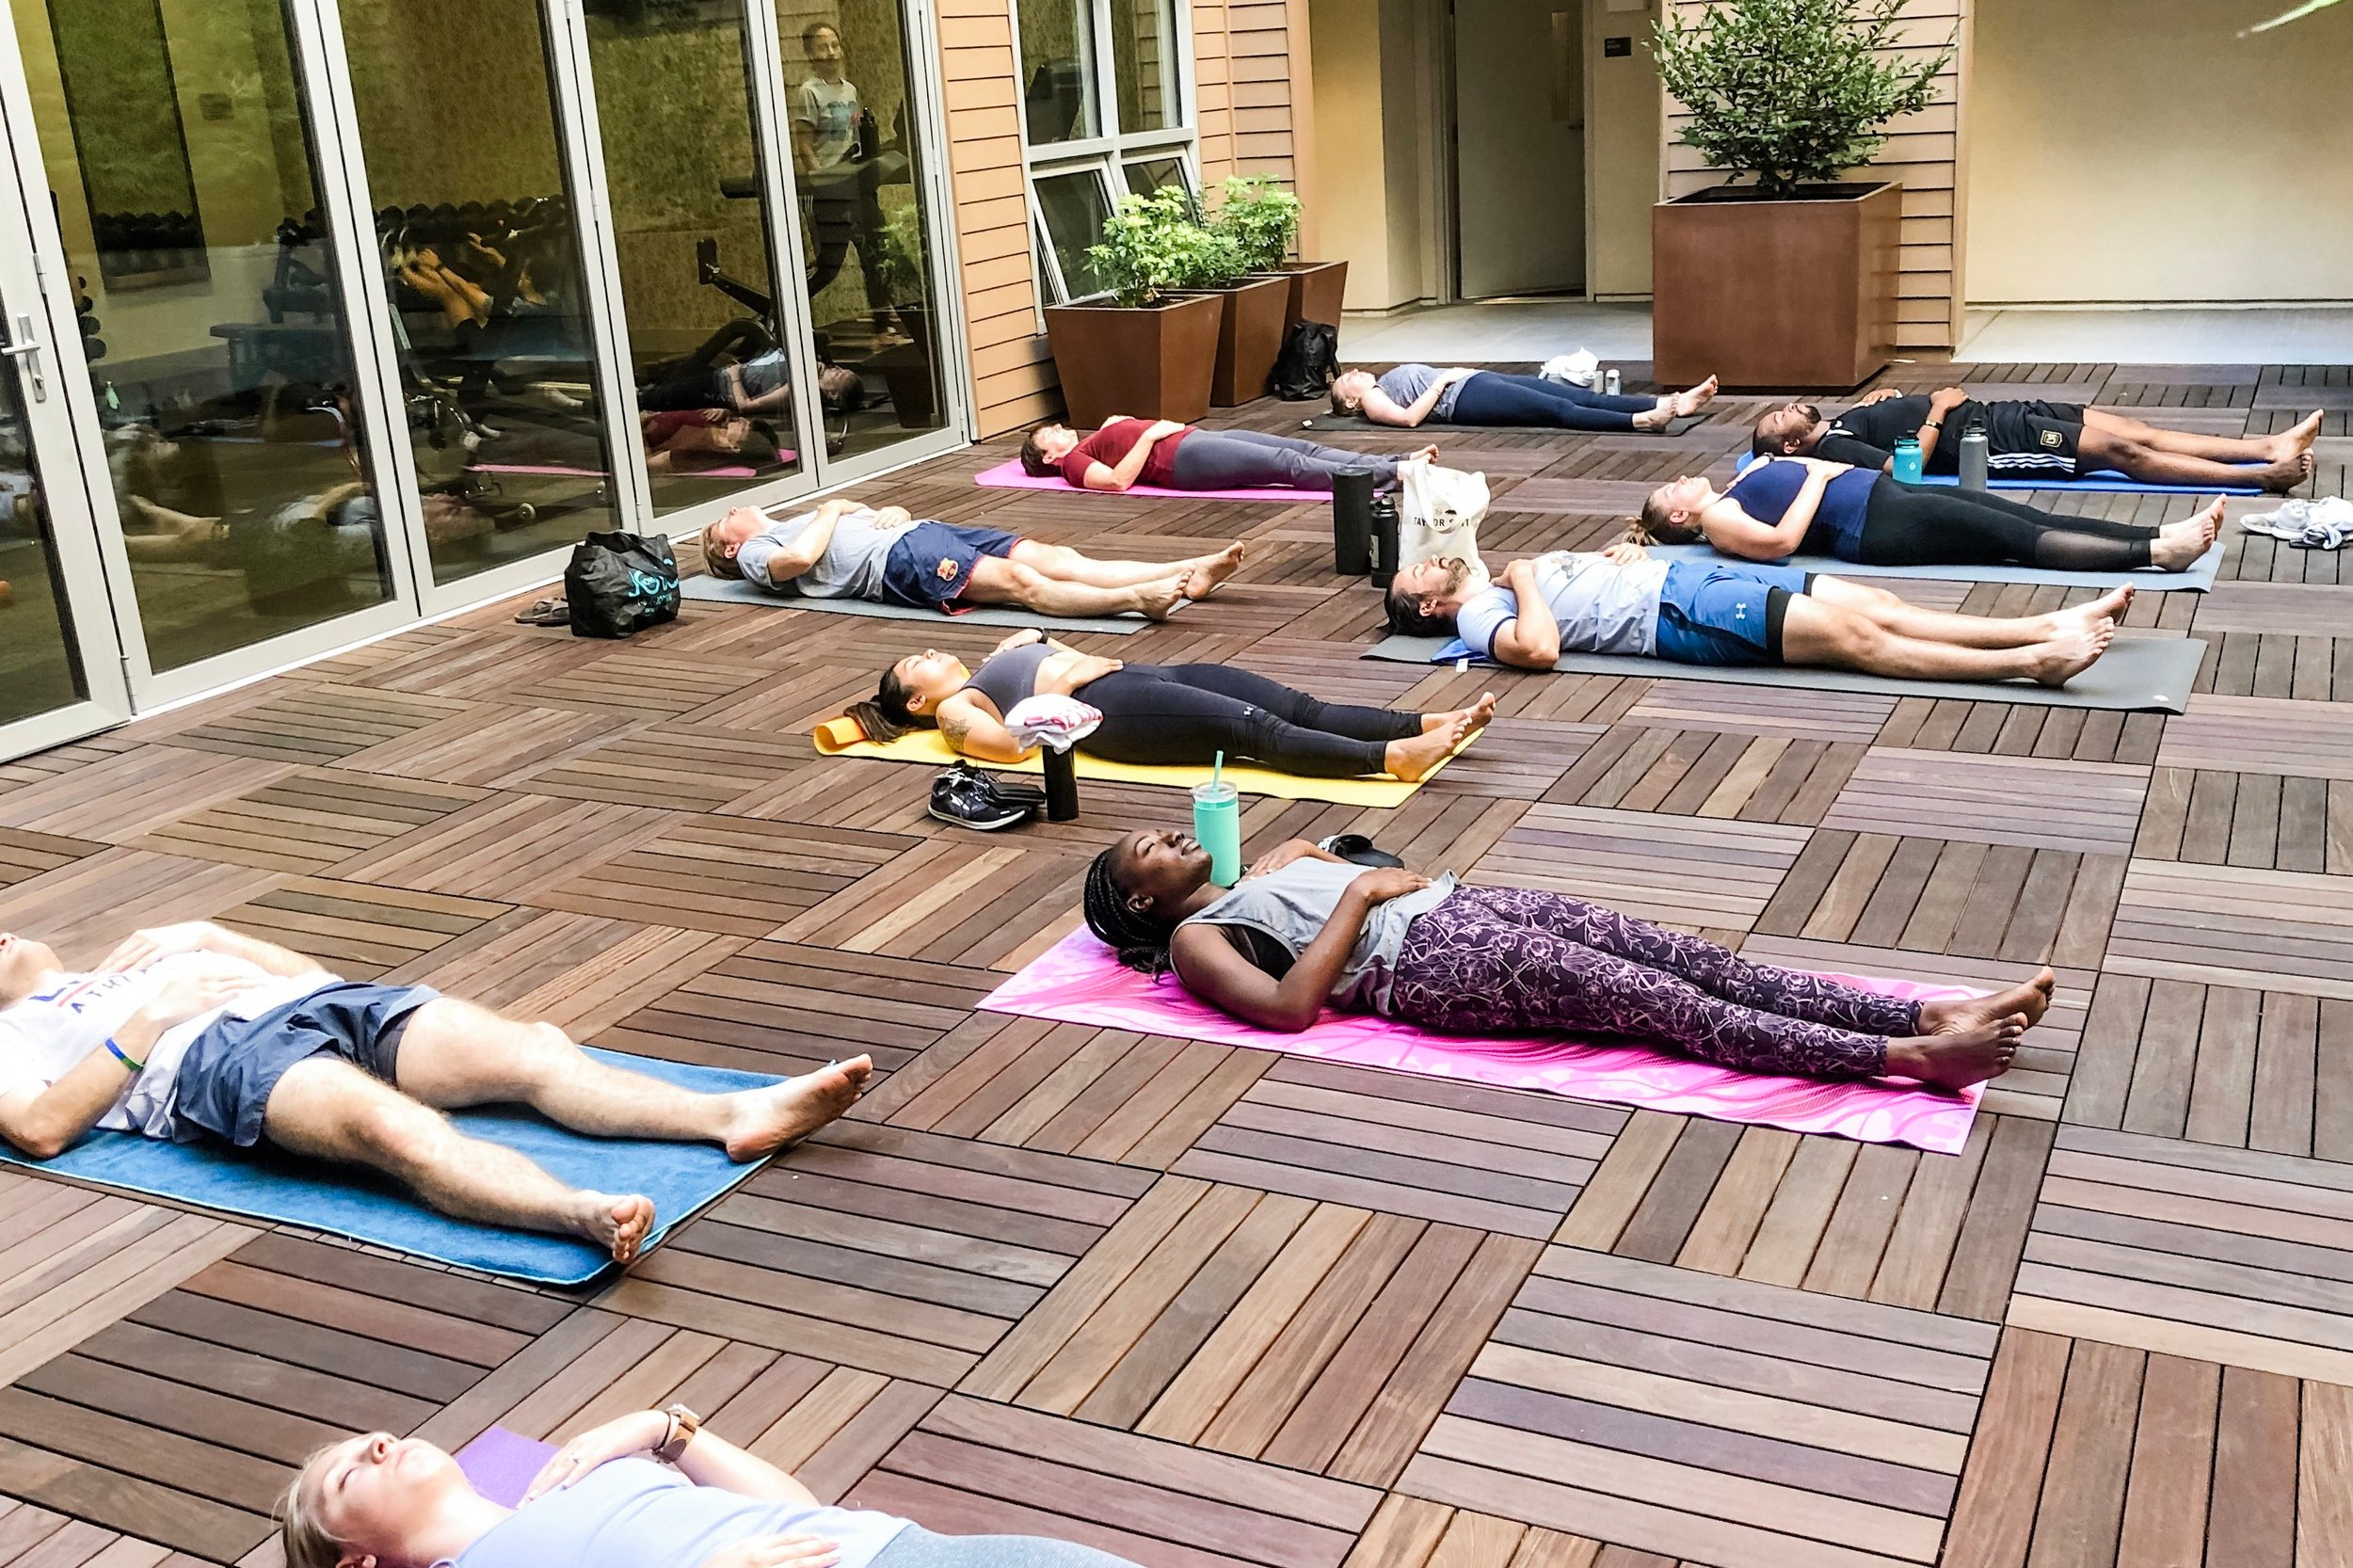 RESIDENTIAL YOGA - RESIDENTIAL YOGA CLASSES FOR BUILT IN COMMUNITY AND RELAXATION